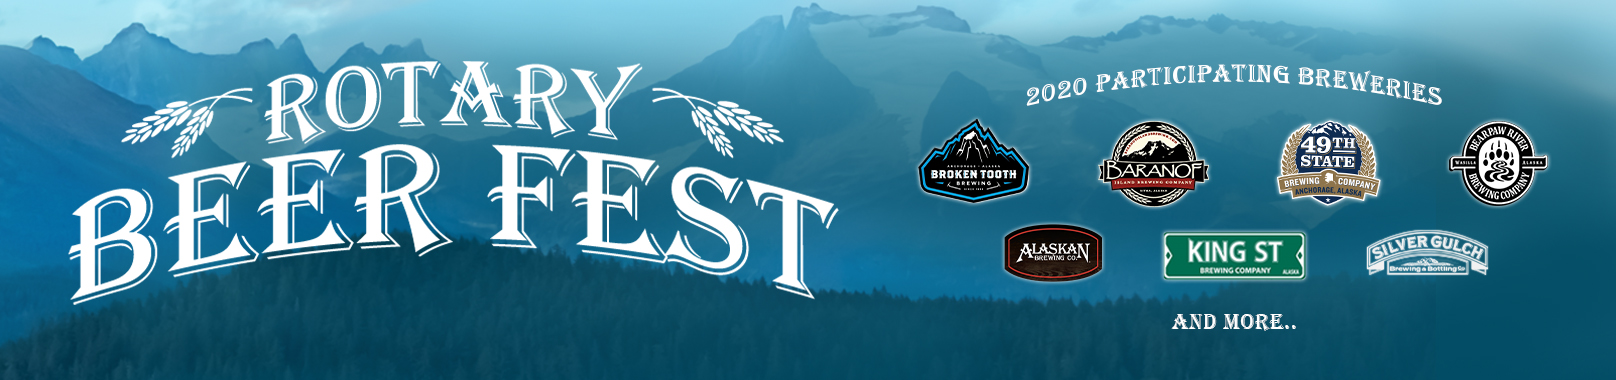 Rotary Beer Fest banner with logos of local Alaskan breweries on a blue backdrop